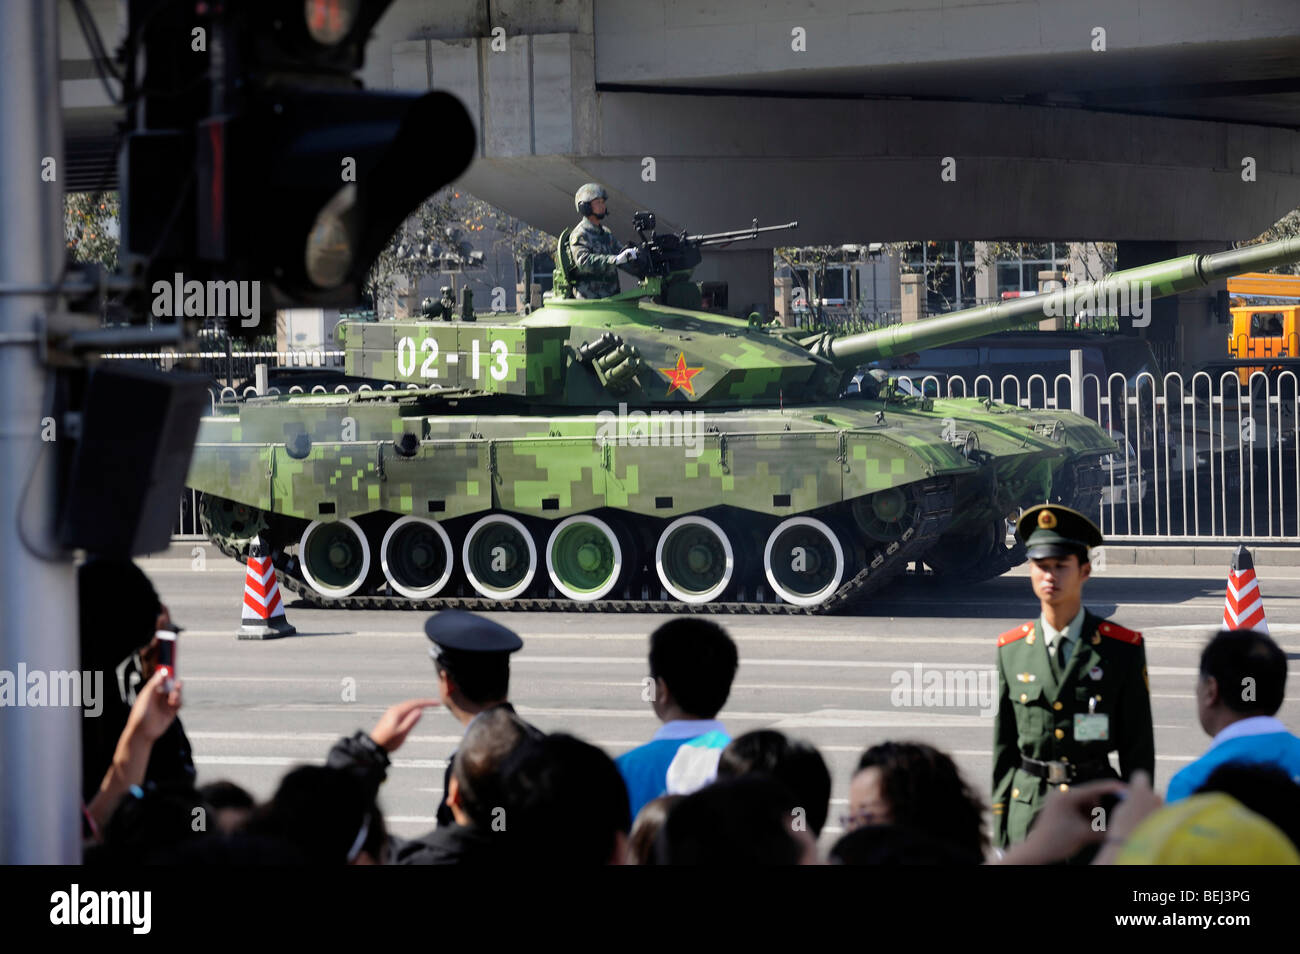 Military tanks, 99A leave the parade marking China's 60th anniversary of the People's Republic of China. - Stock Image